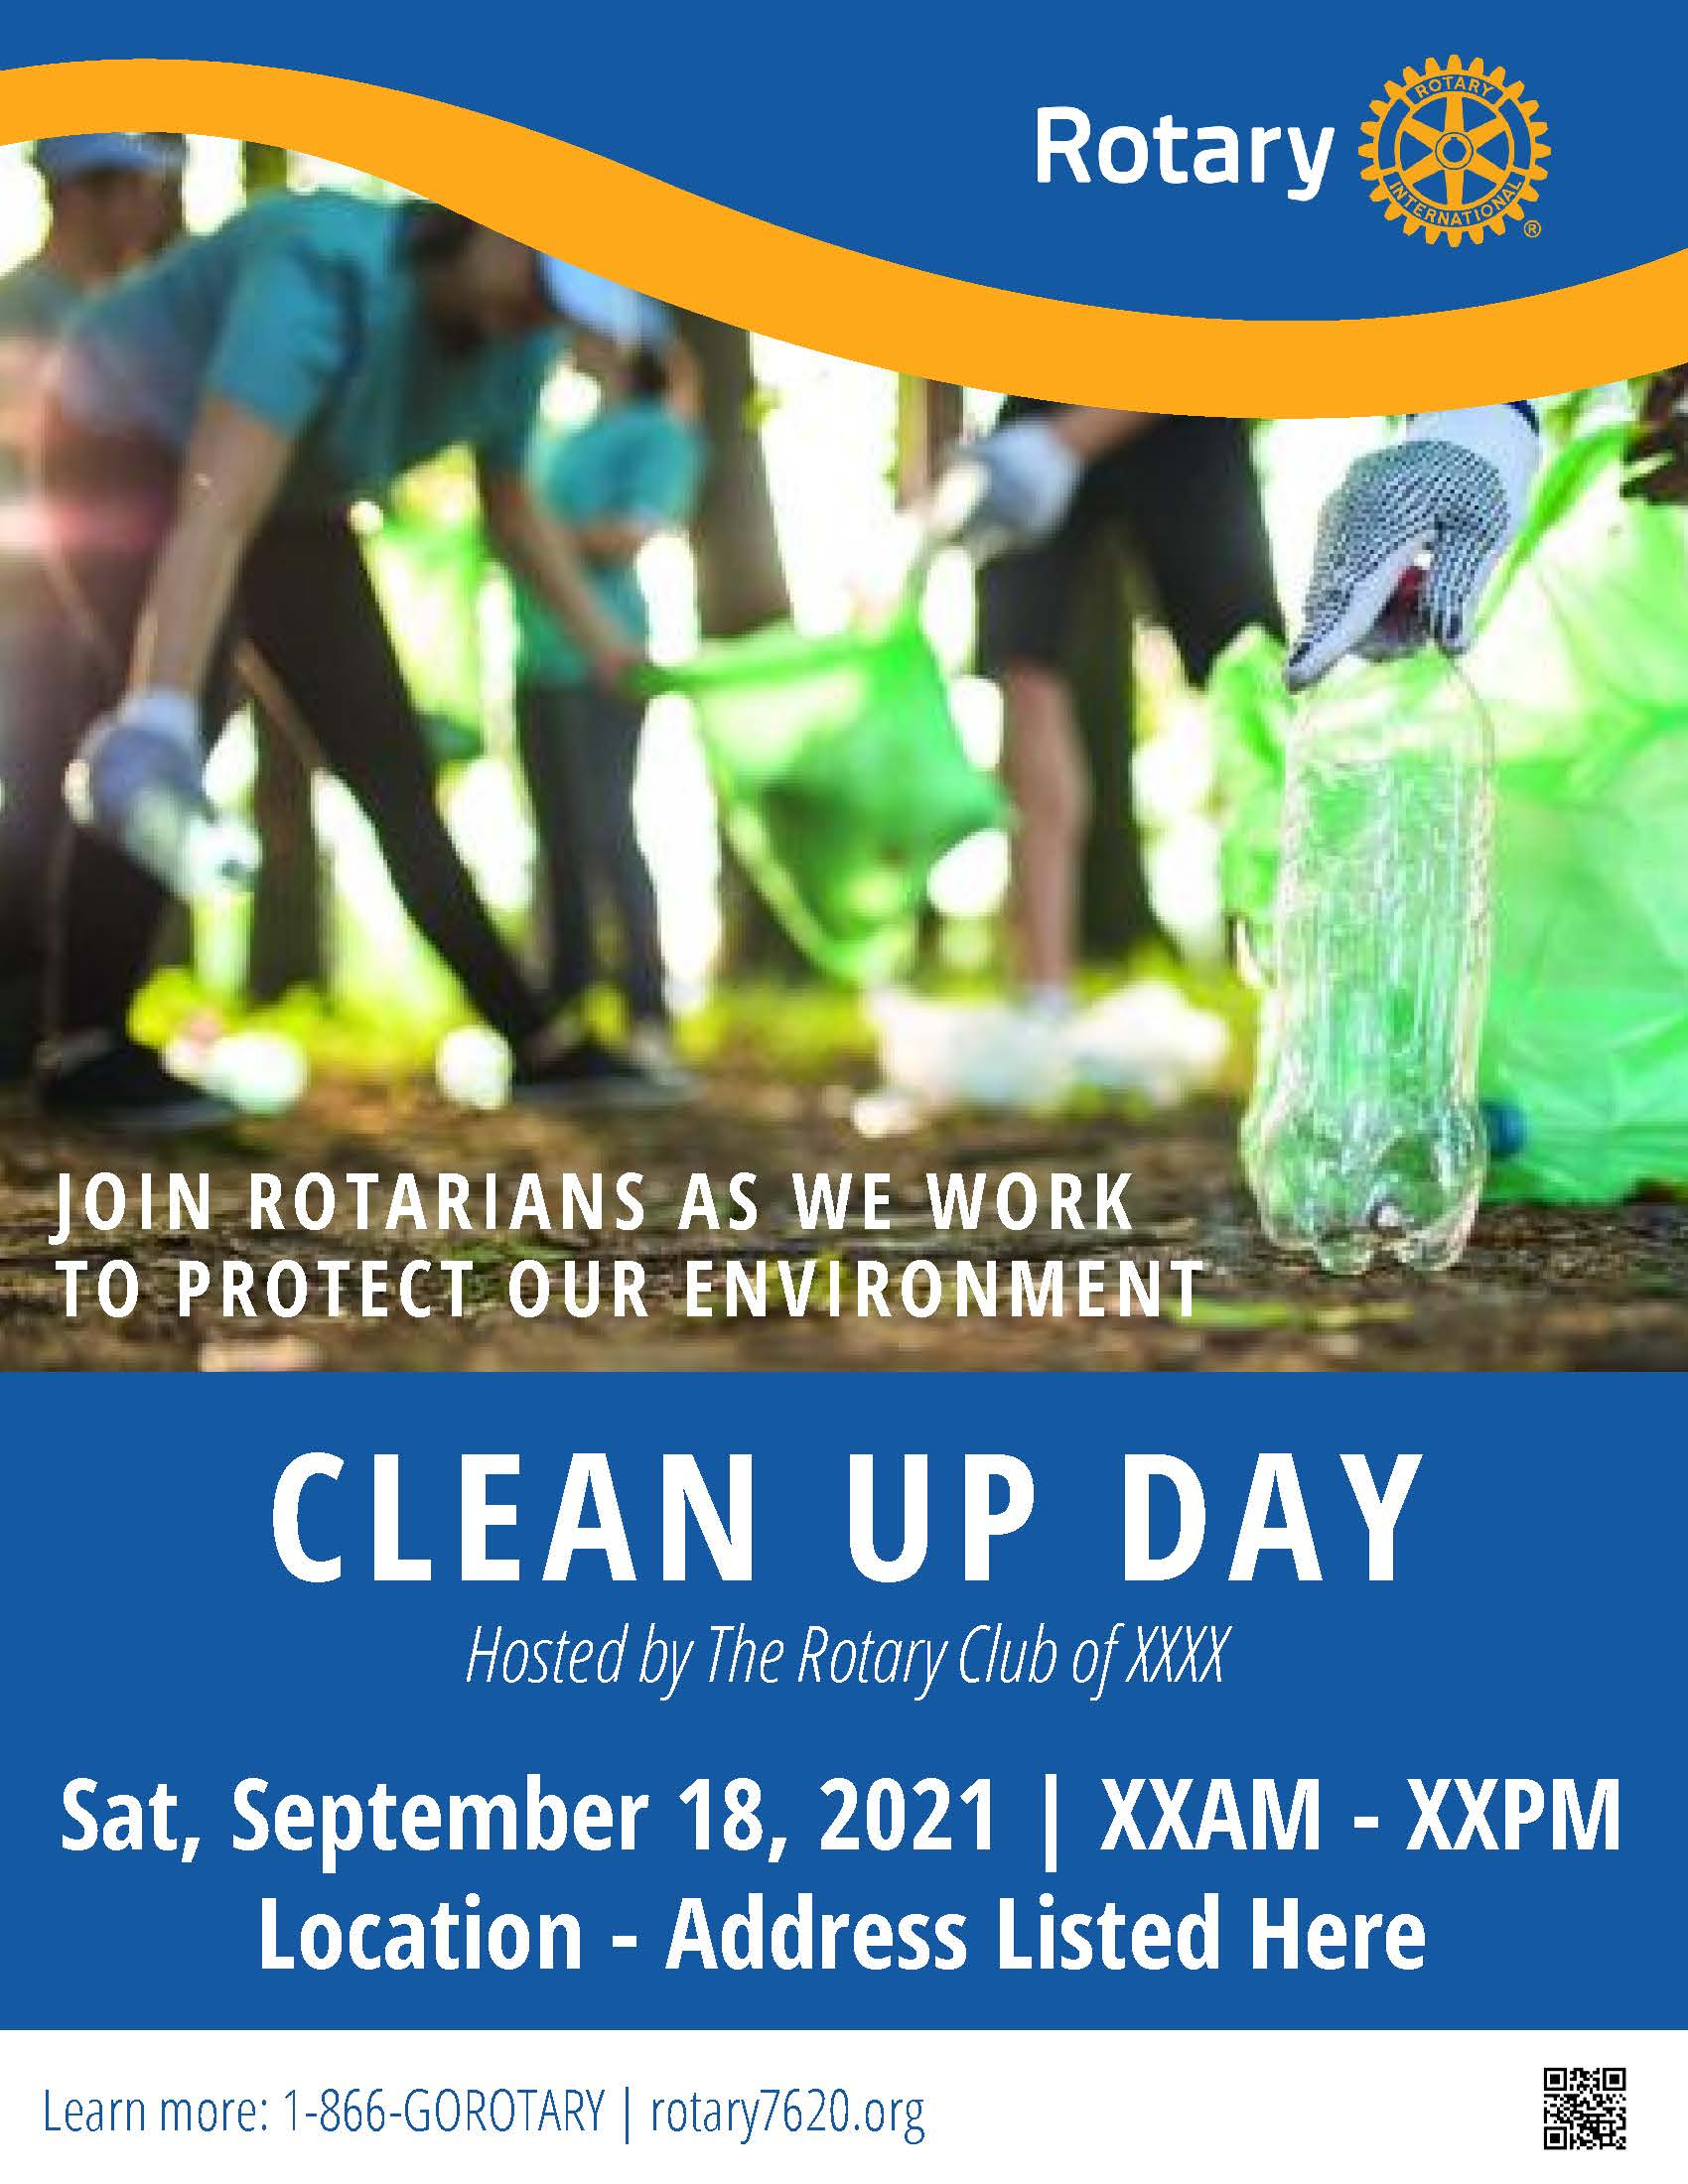 Sept 18 Clean Up Day Poster